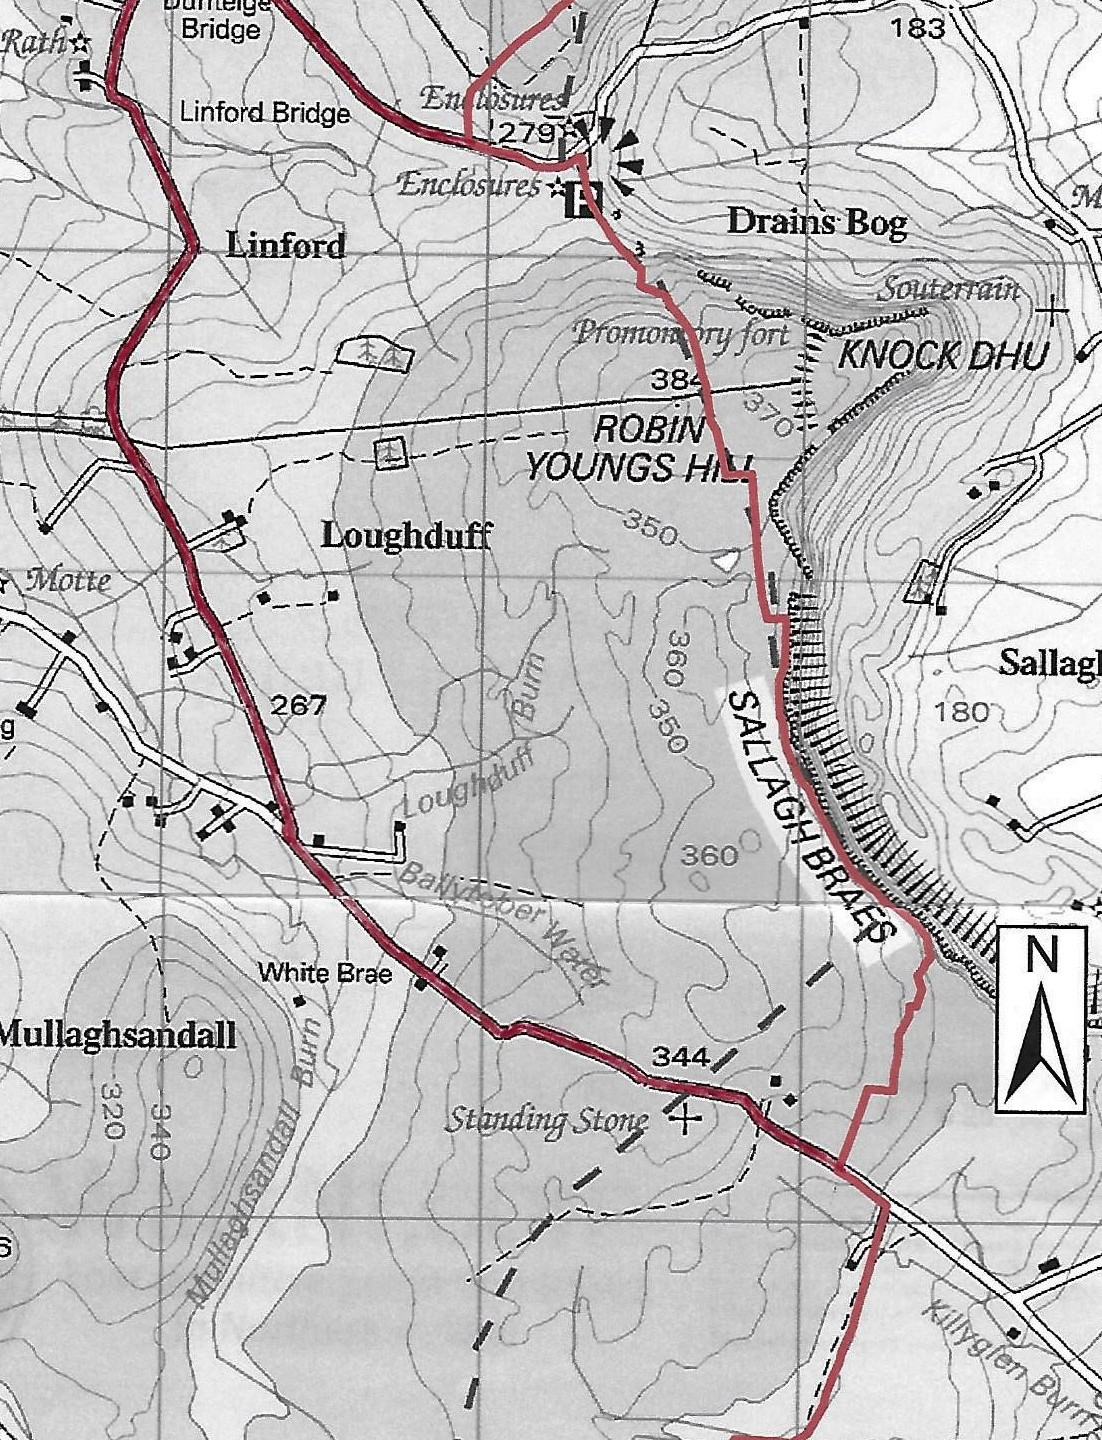 Sections 3 & 4 The Ulster Way